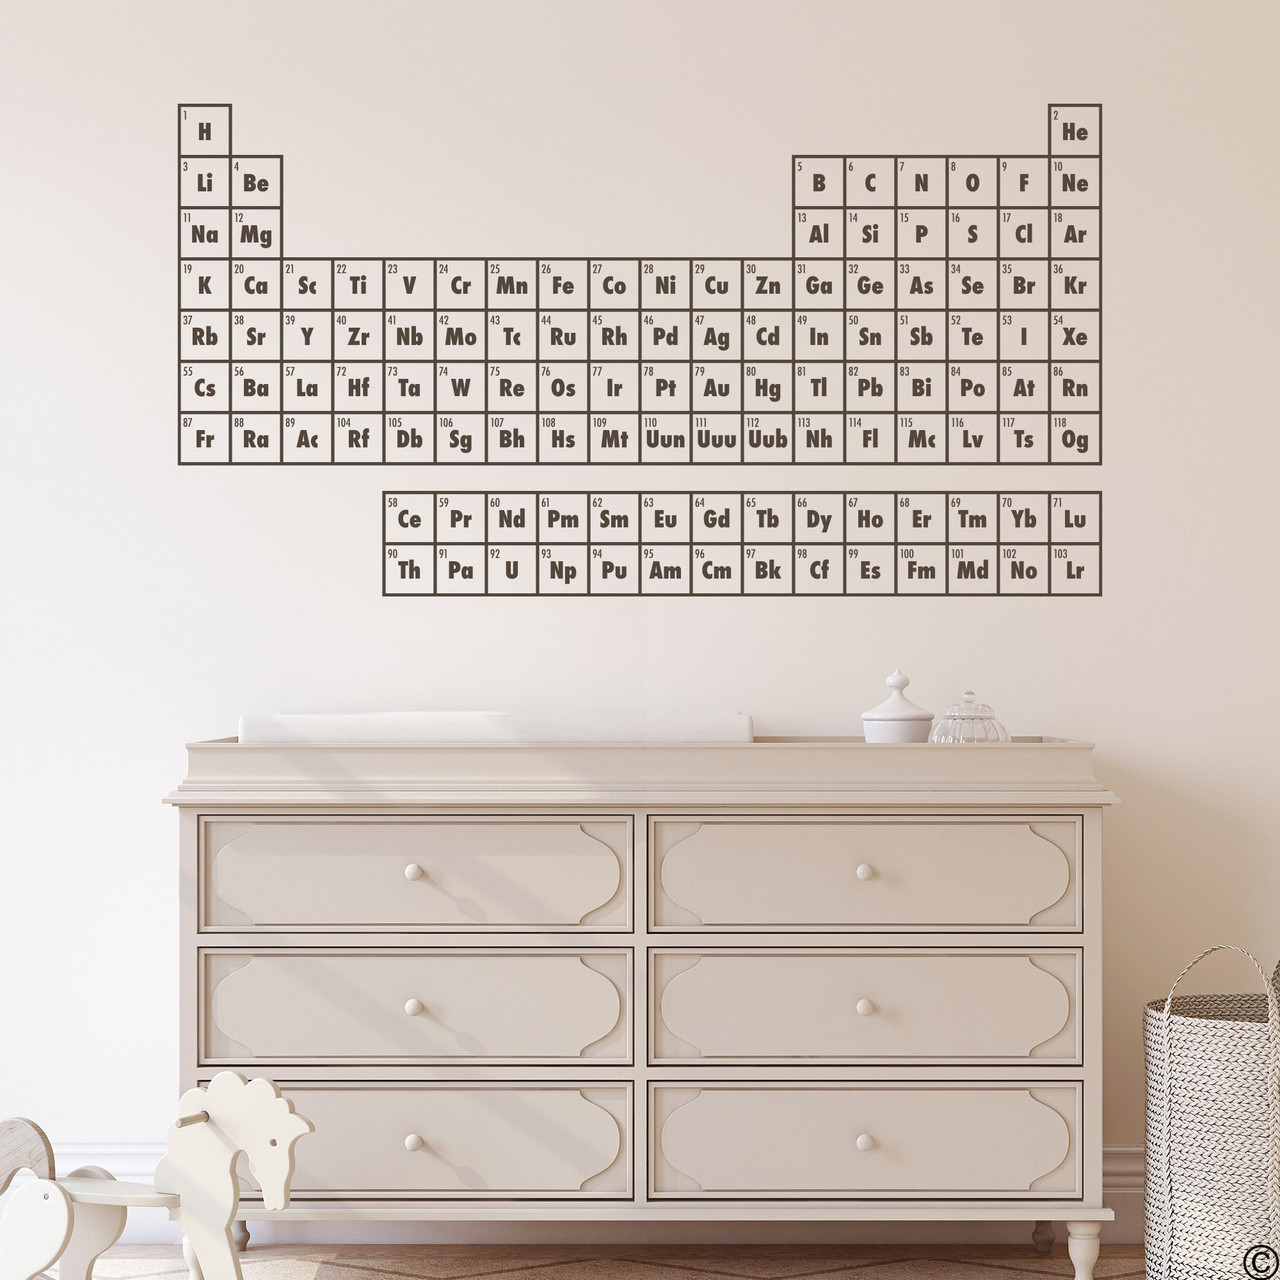 The Periodic Table of Elements wall decal shown here in brown vinyl.